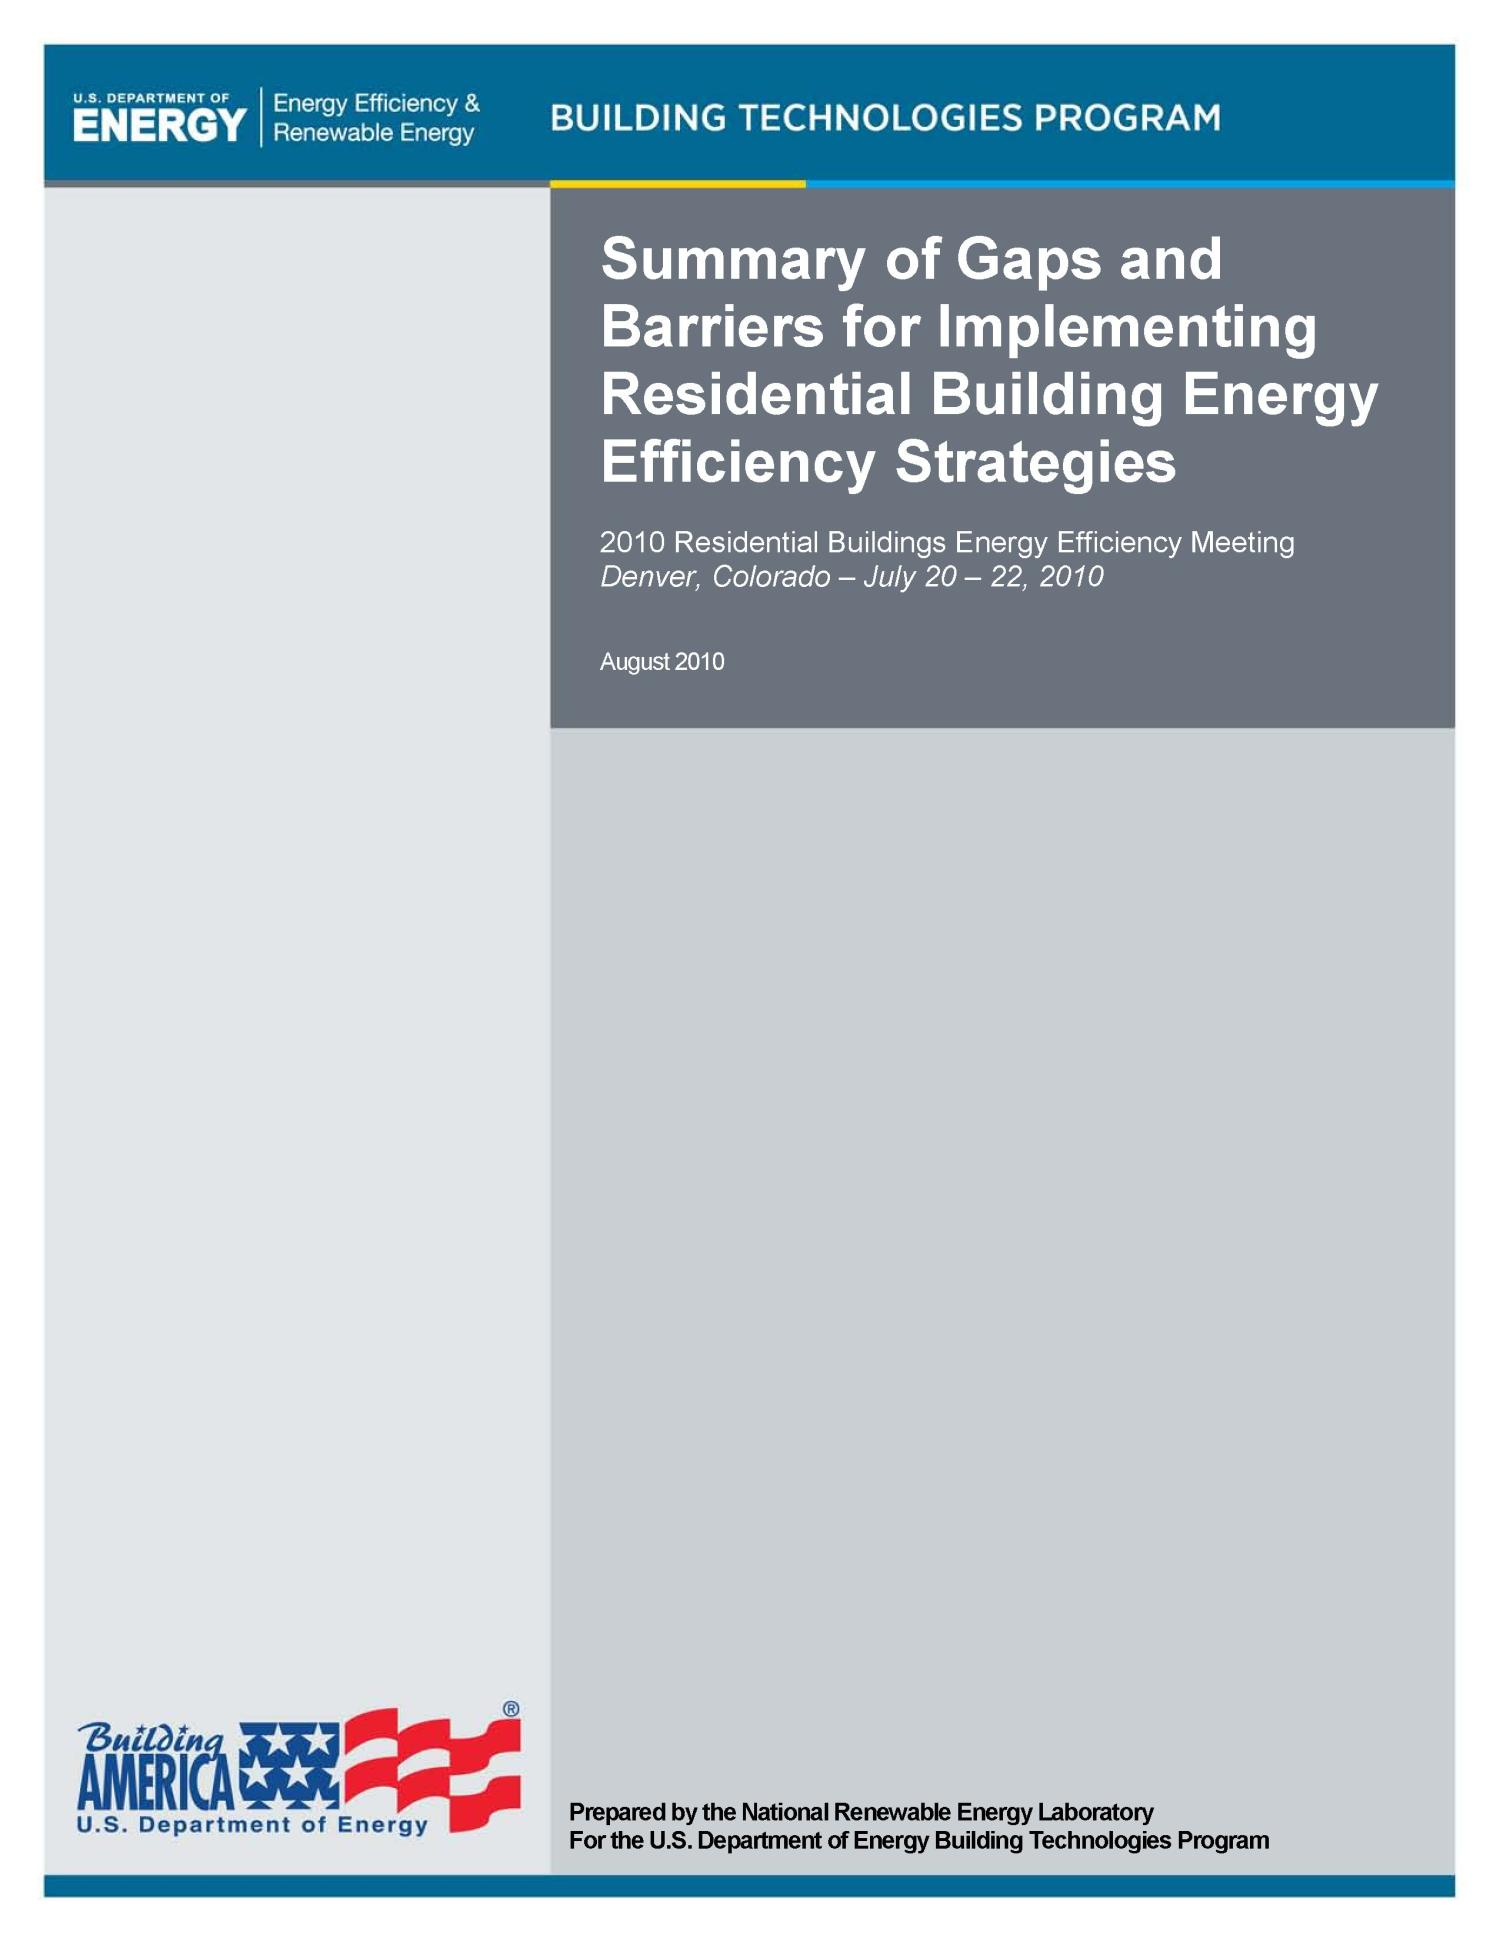 Summary of Gaps and Barriers for Implementing Residential Building Energy Efficiency Strategies                                                                                                      [Sequence #]: 1 of 36